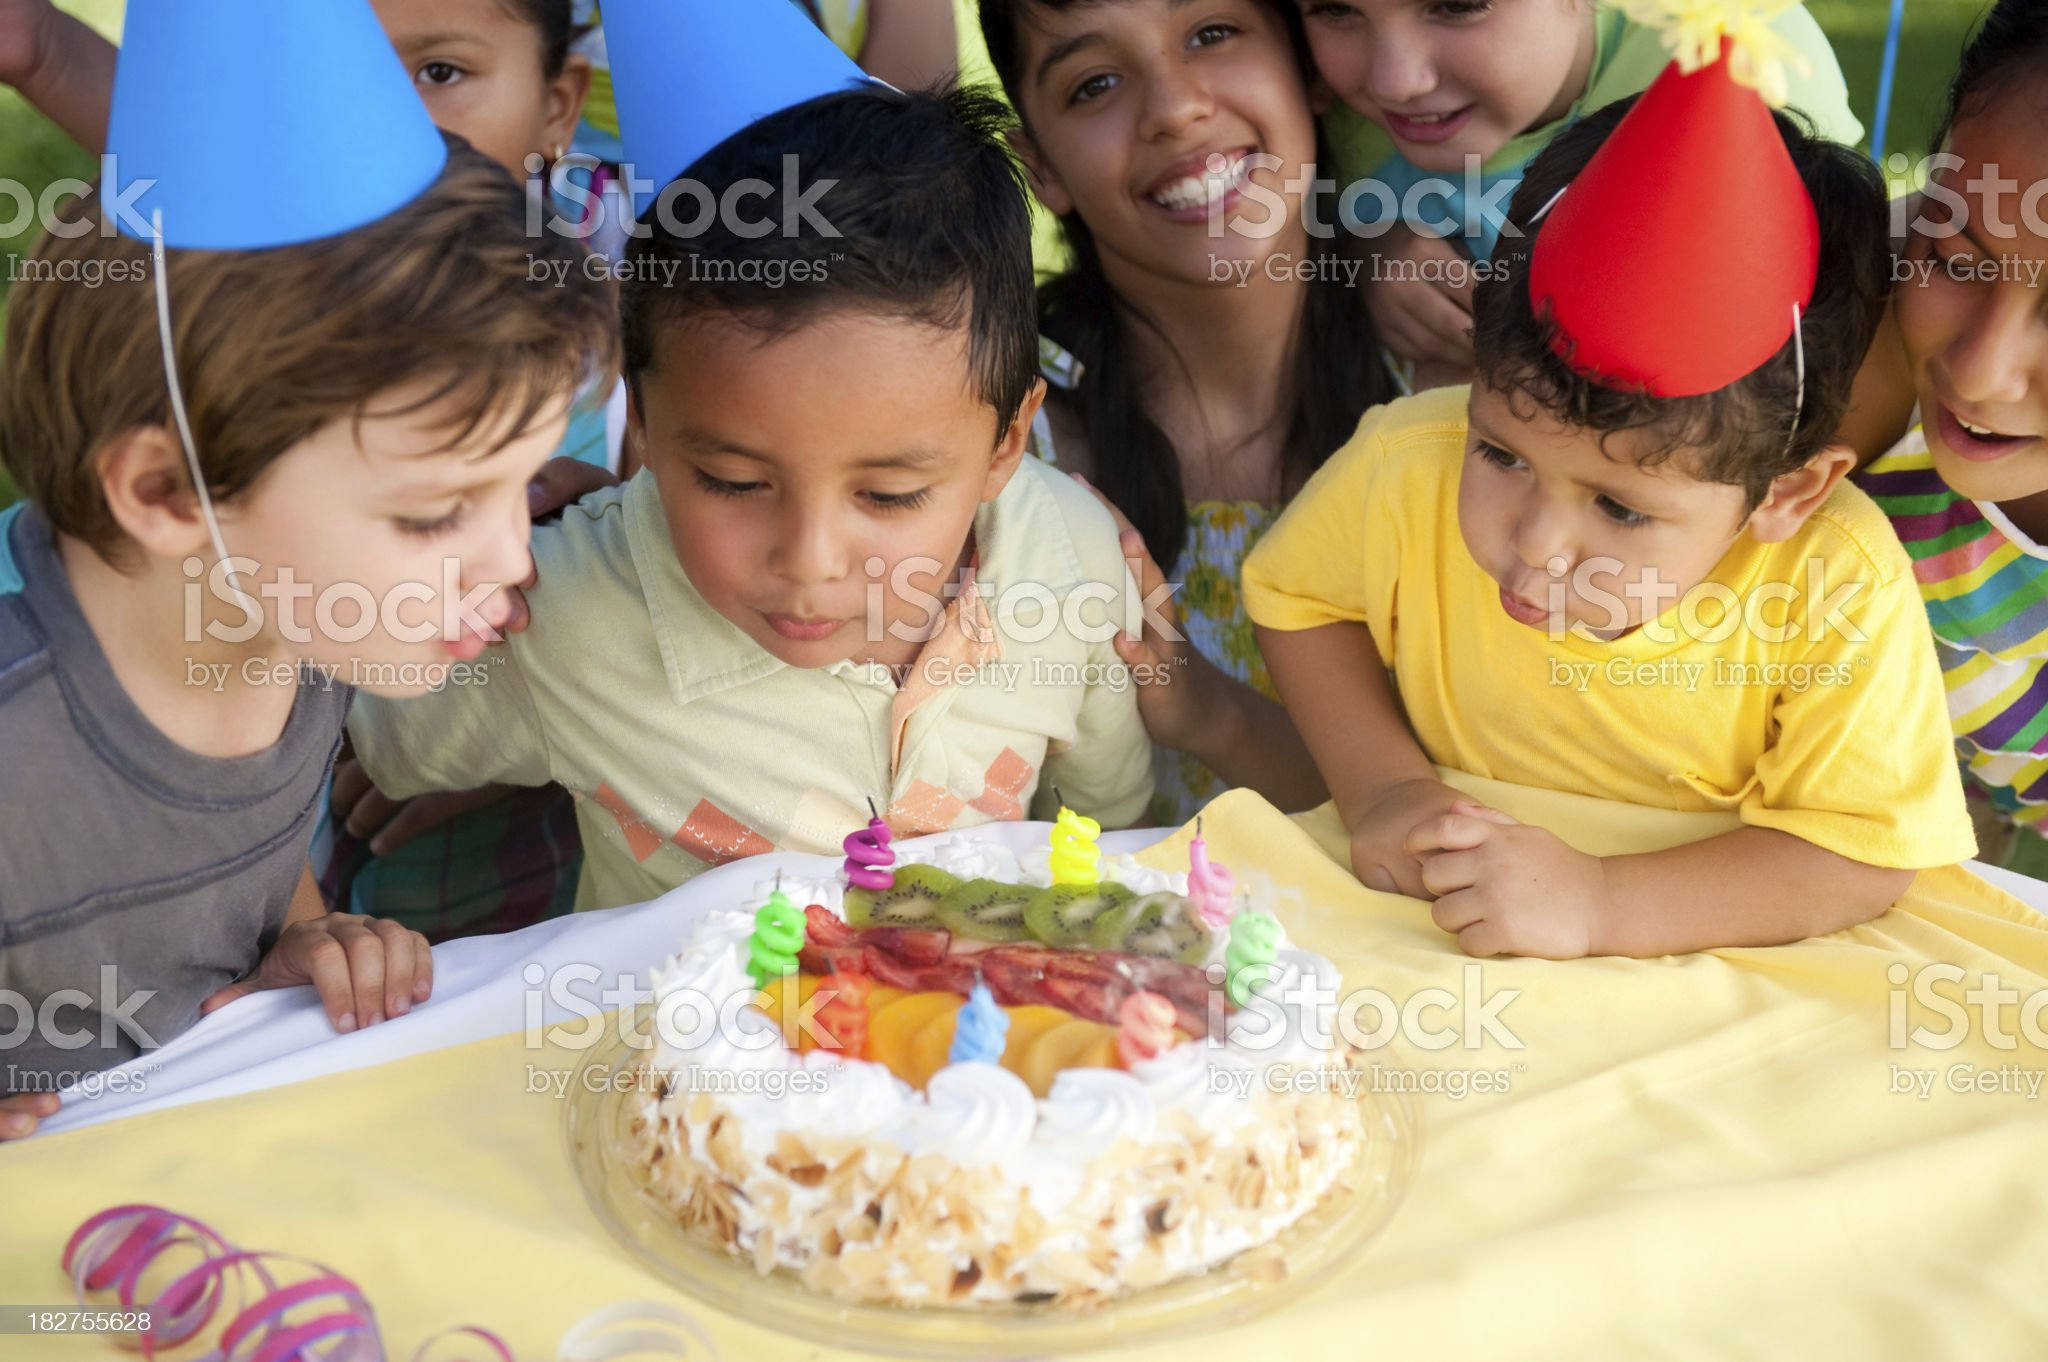 Exciting birthday party royalty-free stock photo